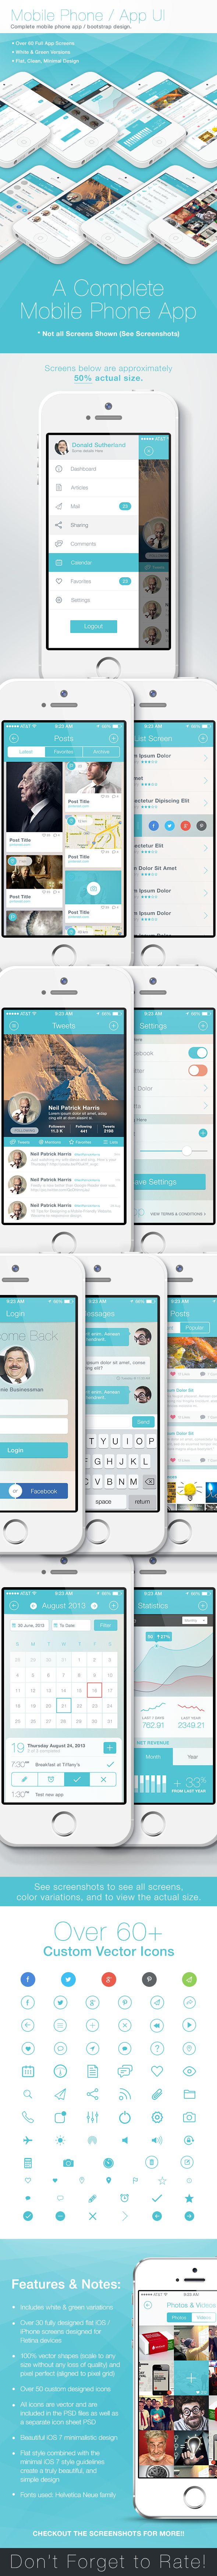 Flat iPhone iOS 7 - Mobile App Bootstrap UI by Joel Ferrell, via Behance